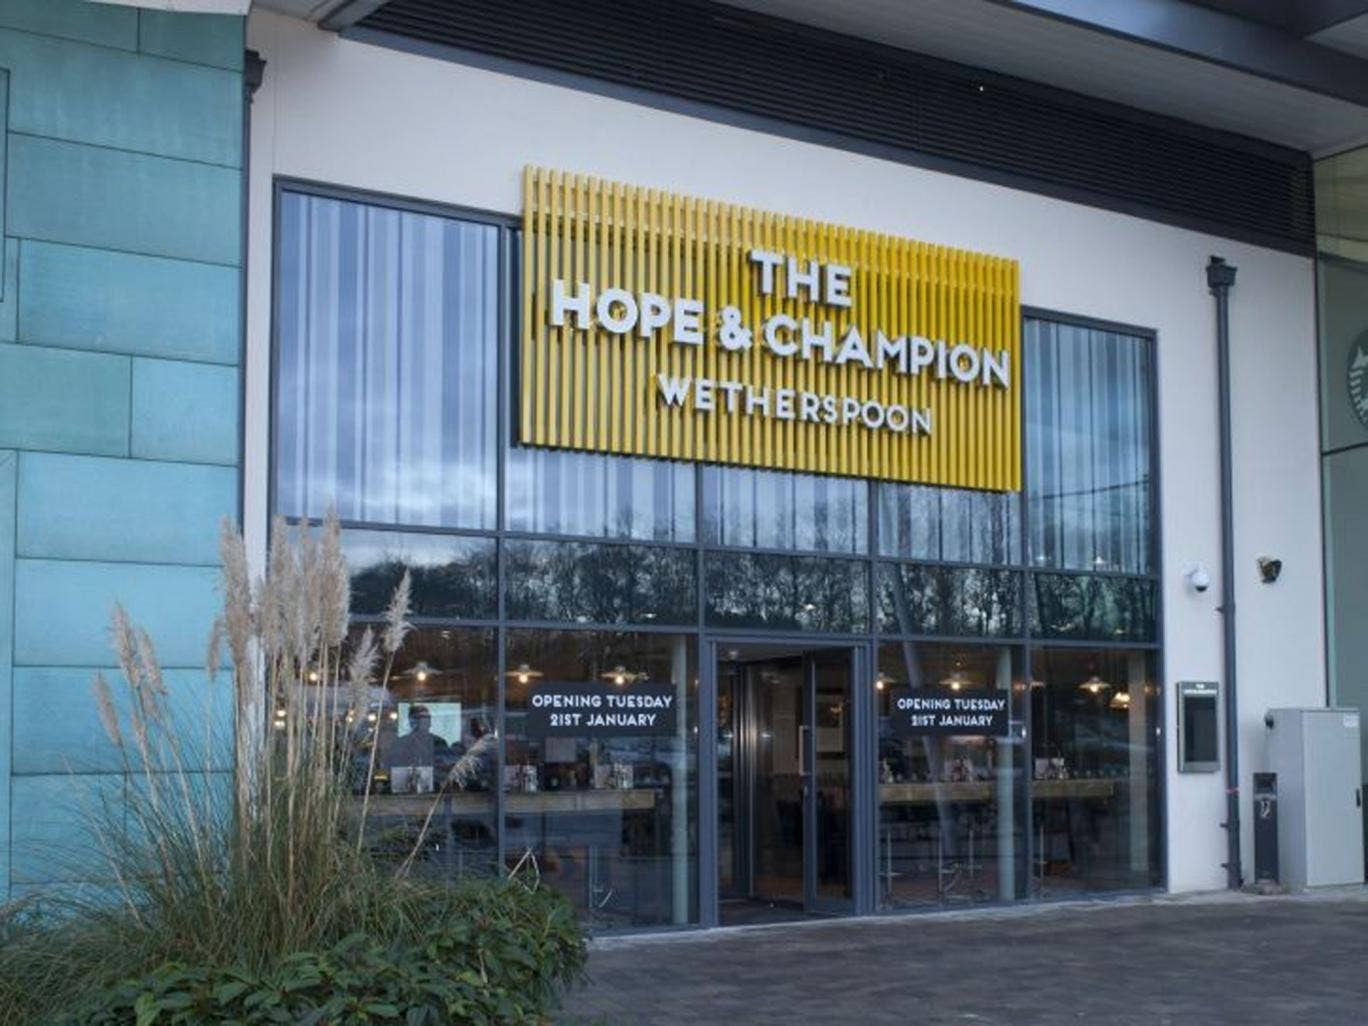 The new JD Wetherspoon pub which has opened at the Extra Motorway Service Area at junction 2 of the M40 in Beaconsfield